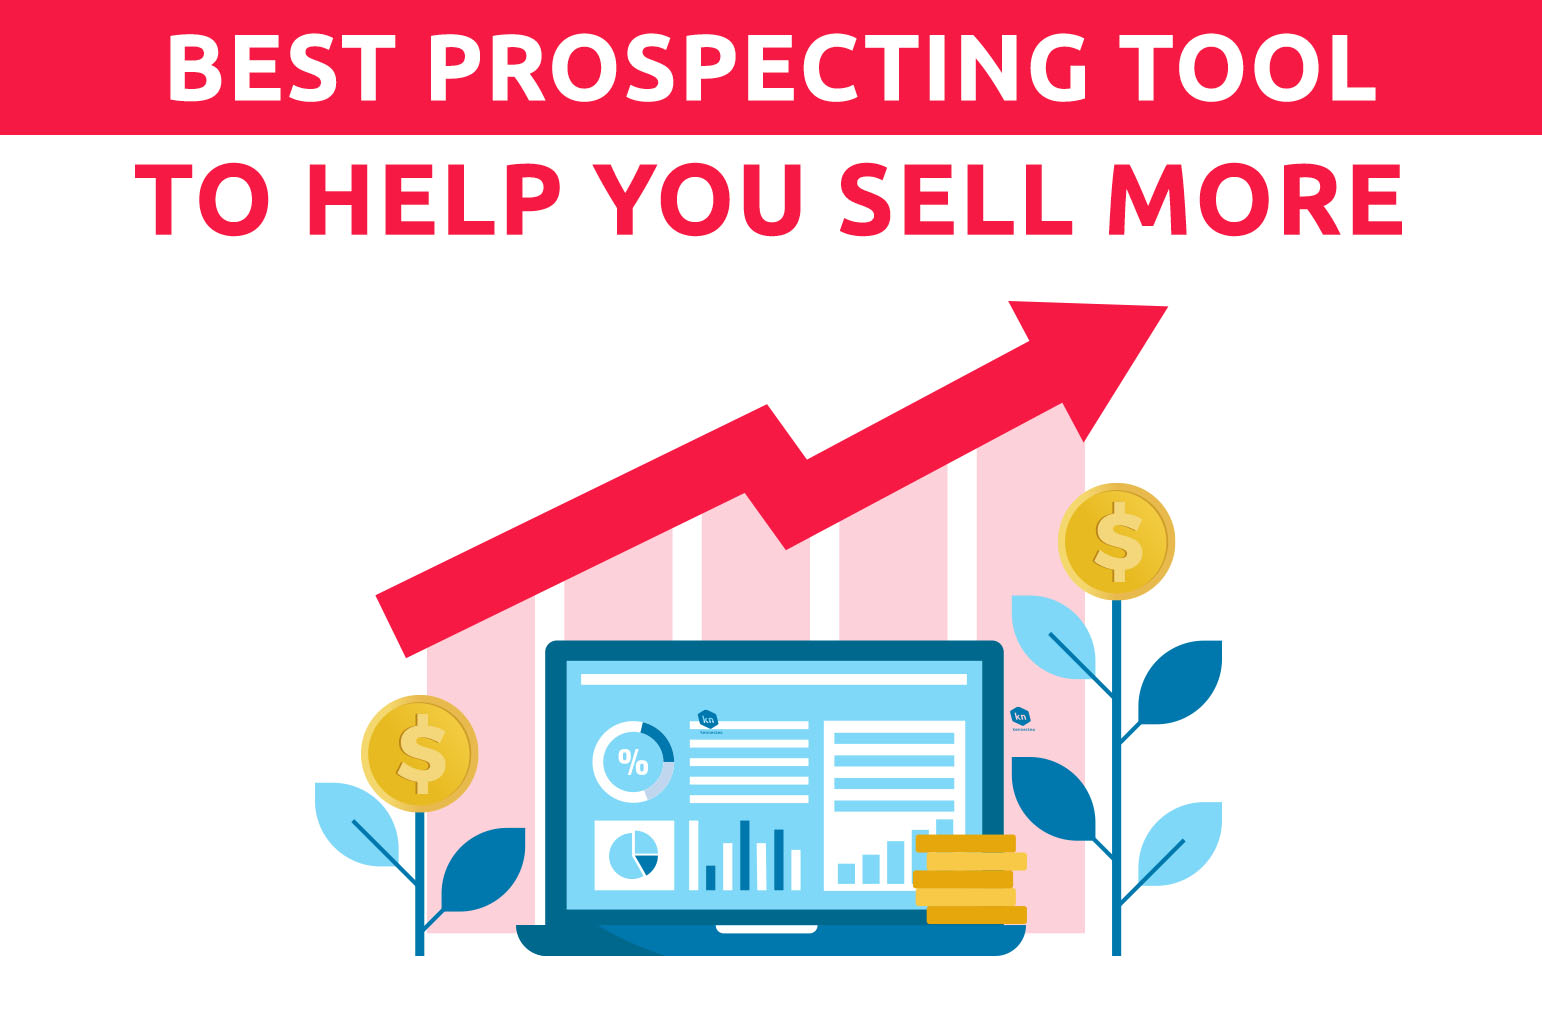 Best Prospecting Tool To Help You Sell More